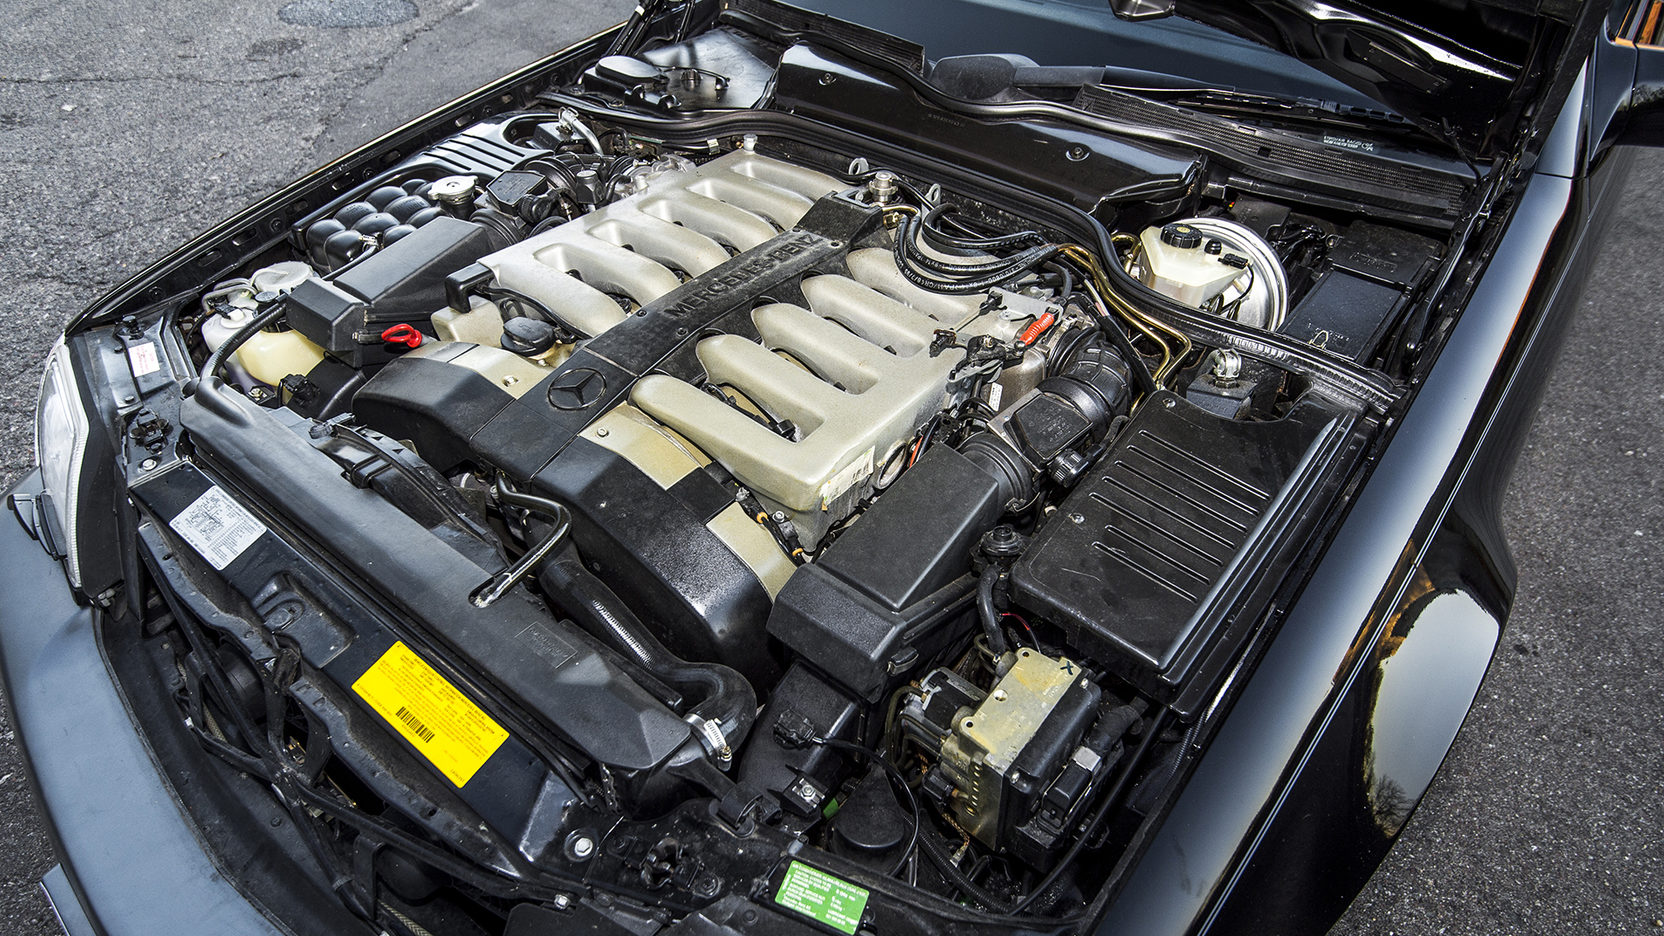 1995 Mercedes-Benz SL 600 engine